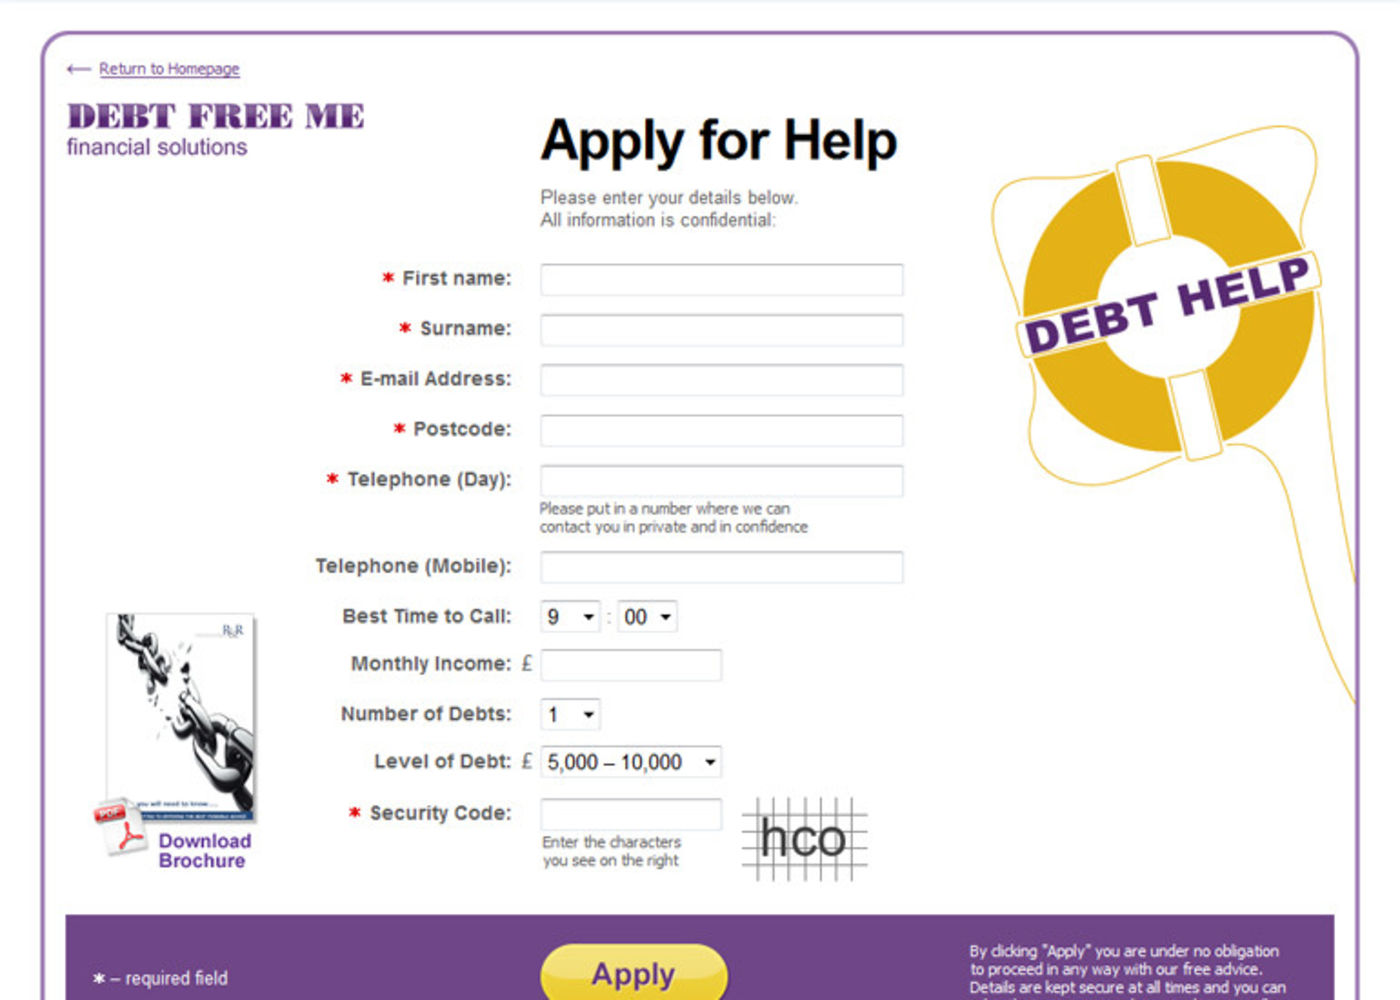 Debt Free Me Apply for Help